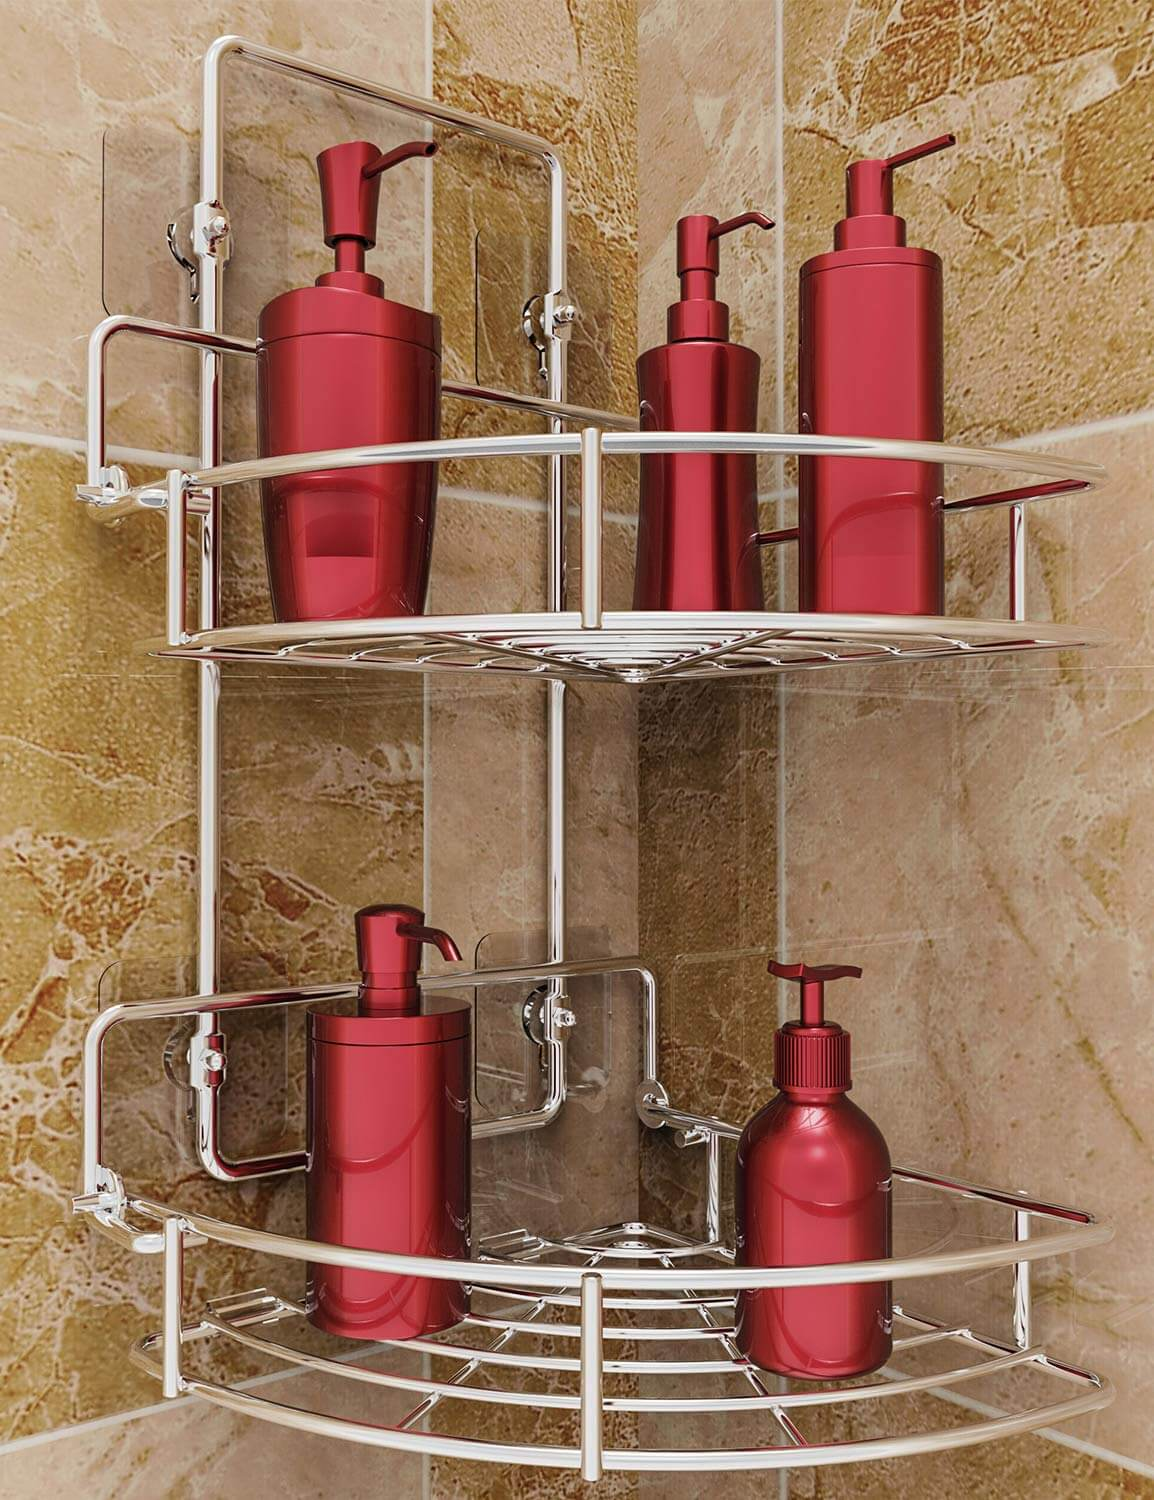 Sturdy Suctioned or Drilled Shower Storage Idea